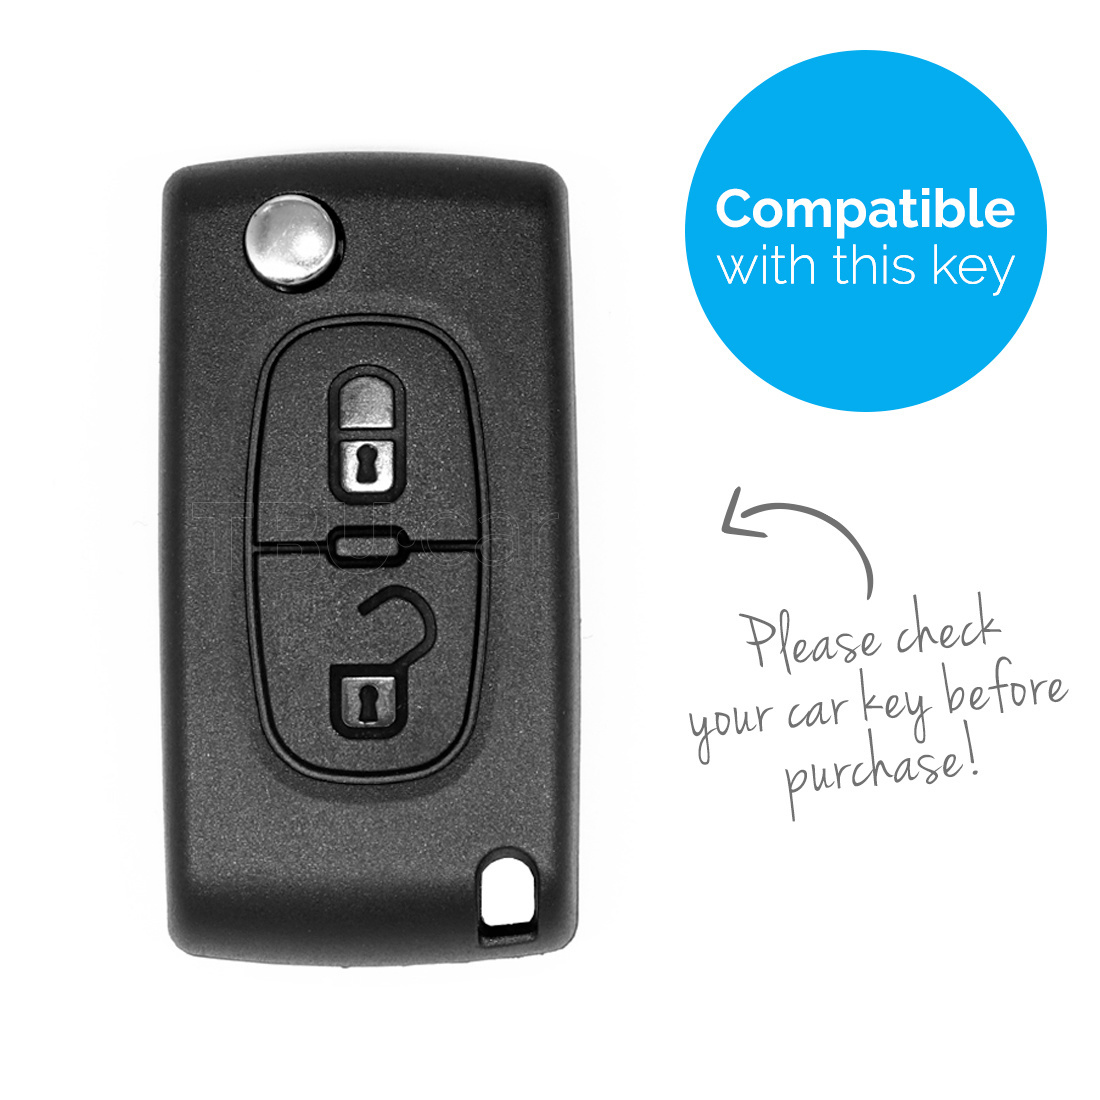 TBU car TBU car Car key cover compatible with Citroën - Silicone Protective Remote Key Shell - FOB Case Cover - Red